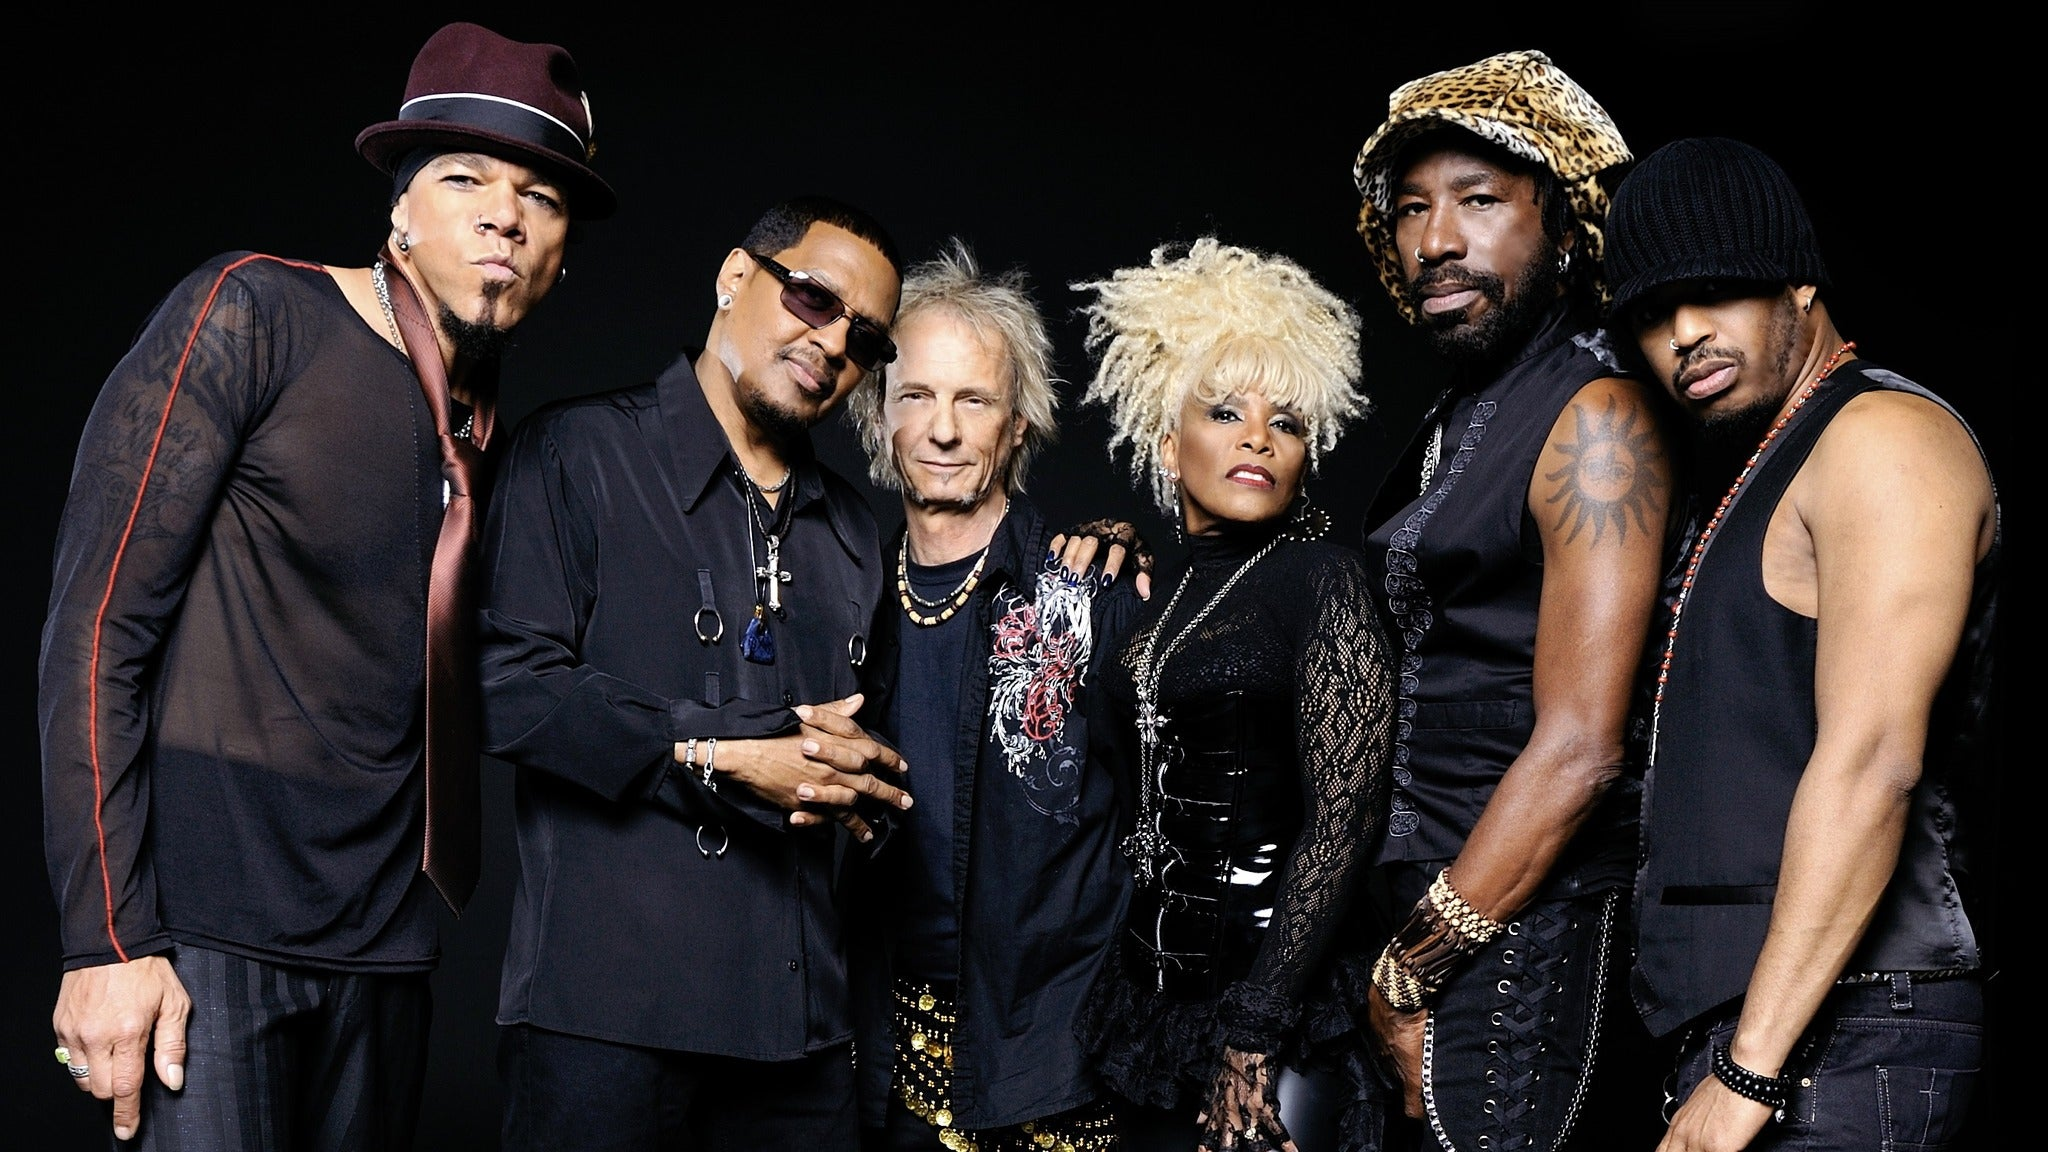 Mother's Finest at Buckhead Theatre - Atlanta, GA 30305